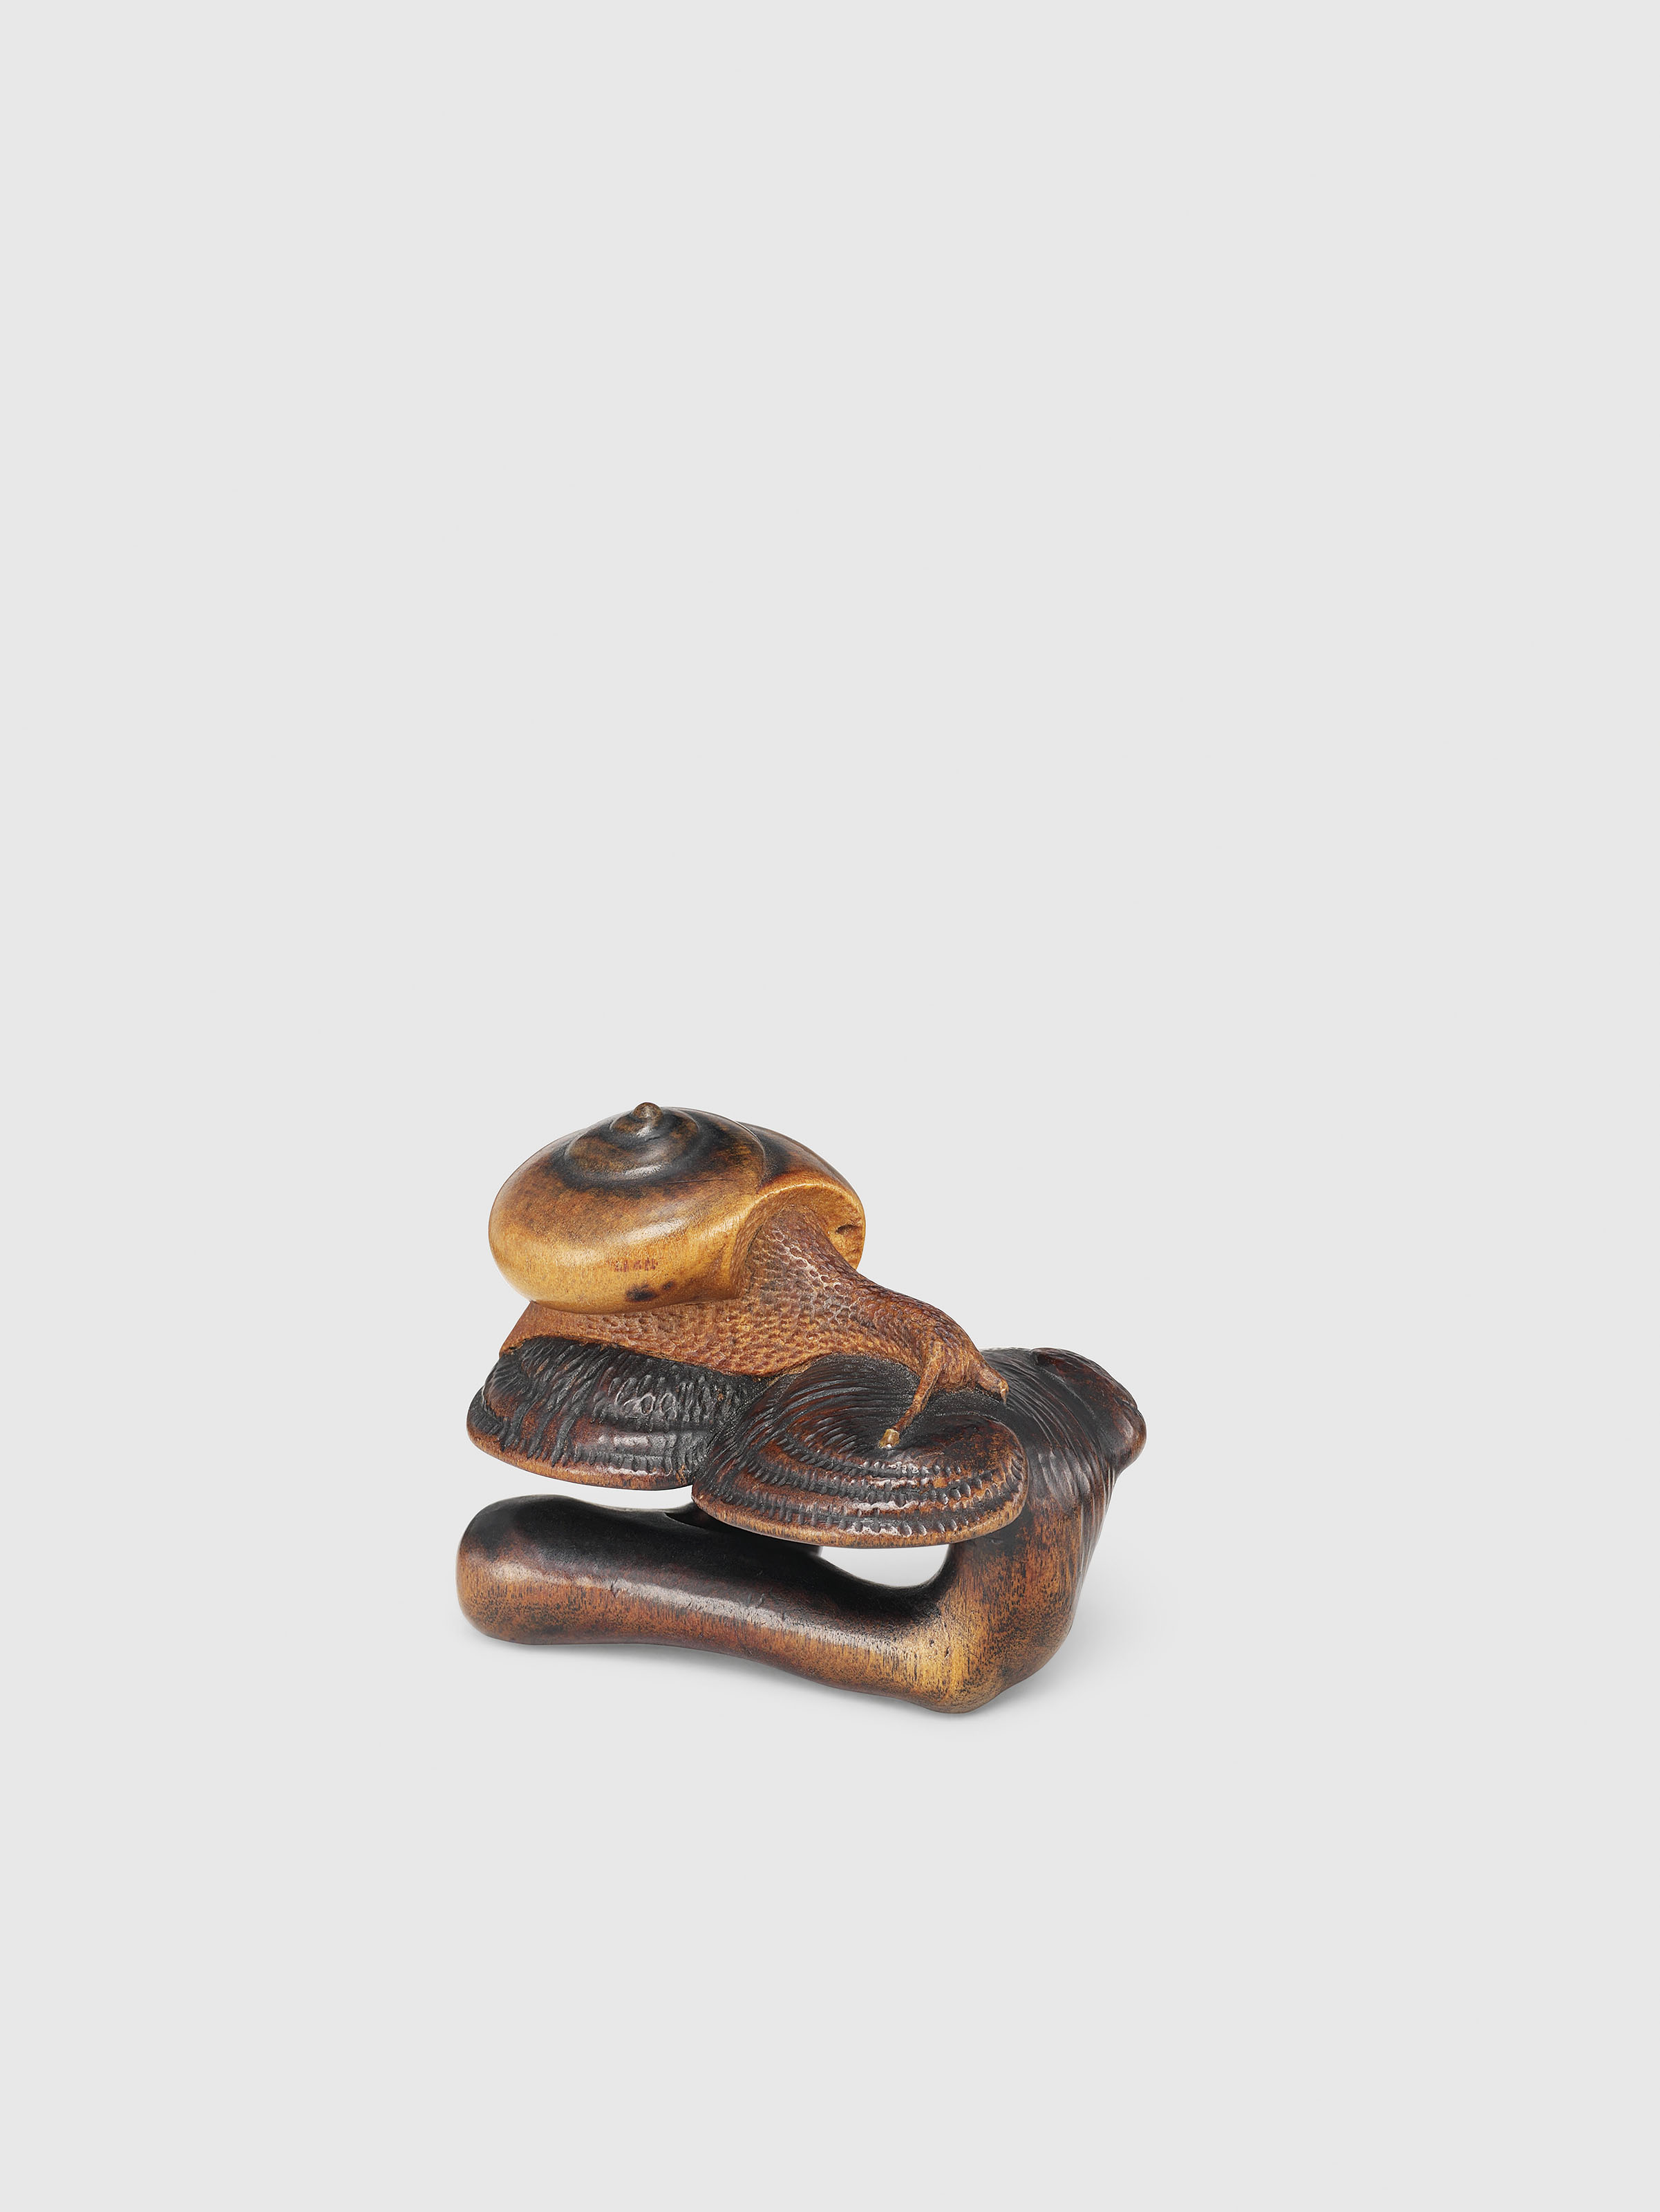 A WOOD NETSUKE OF A SNAIL AND FUNGUS